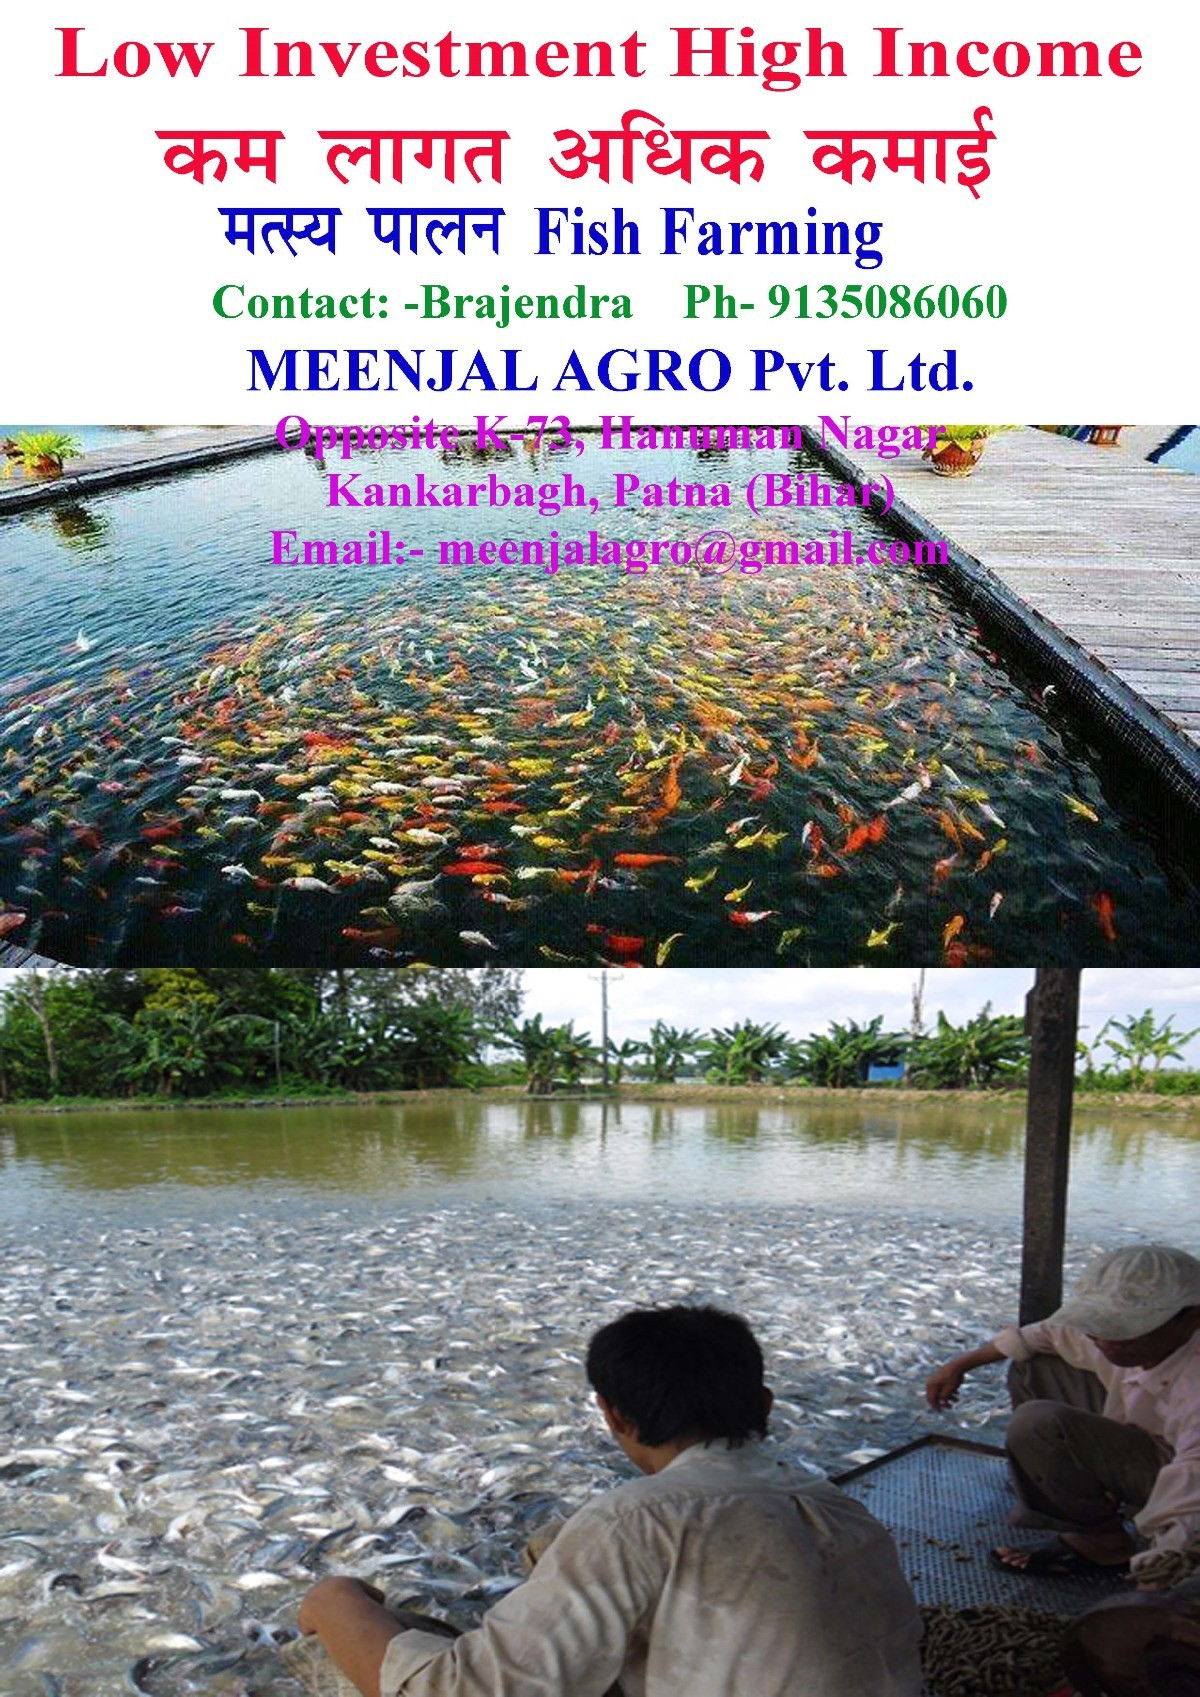 Fish aquarium jabalpur - We Provide Free Consultancy For Aquarium Fish Farming And Pond Fish Farming